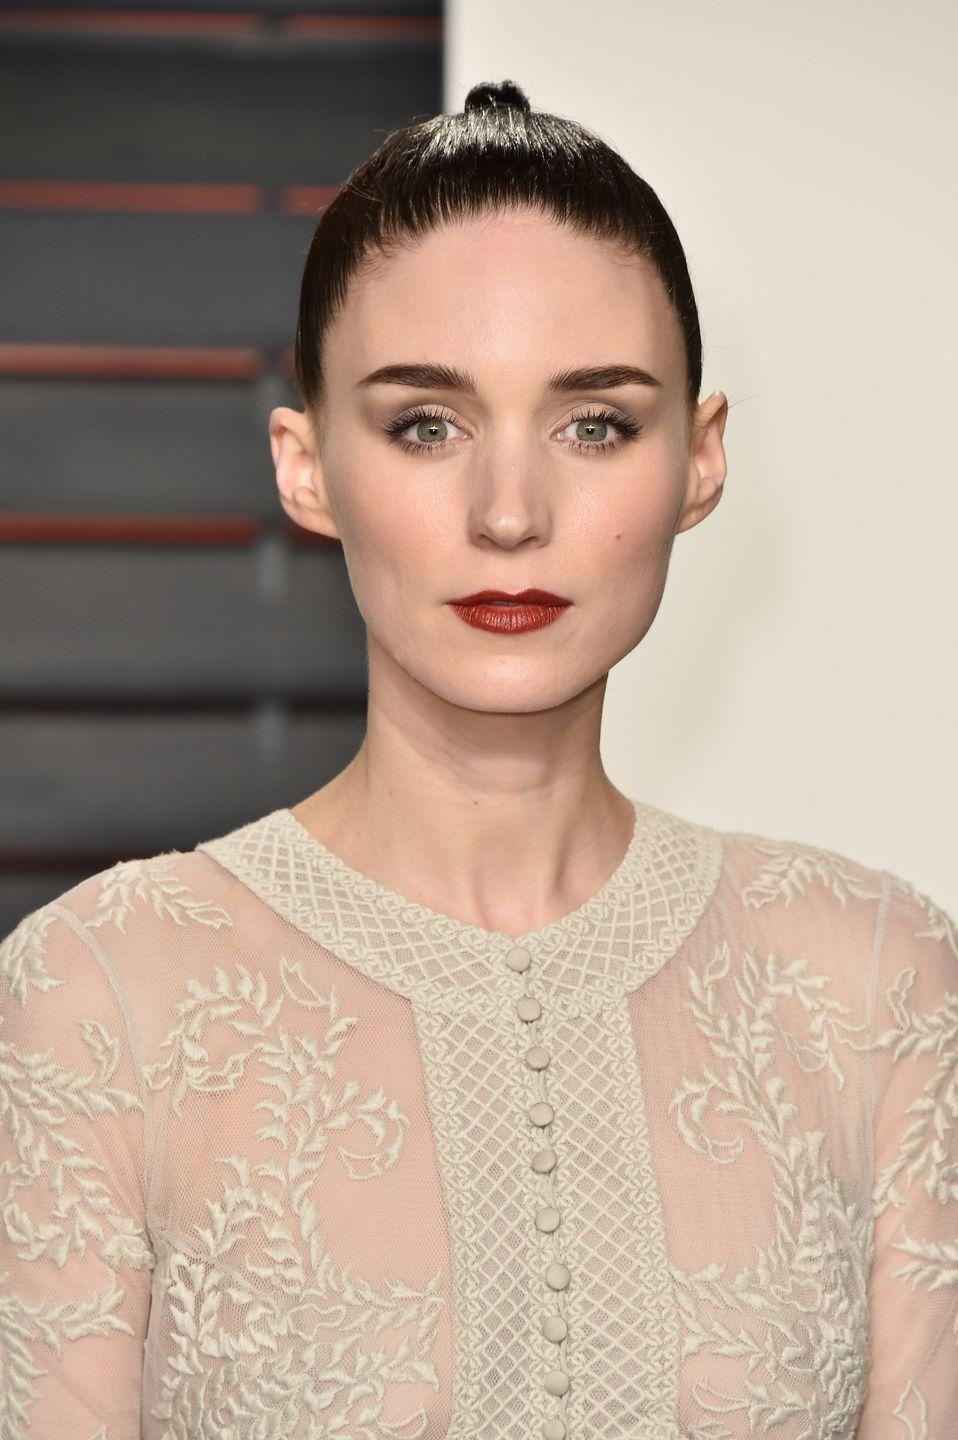 "<p>Mara hated the lack of diversity in the 2015 film, <em>Pan. </em>She told <em><a href=""https://www.telegraph.co.uk/film/carol/rooney-mara-interview/"" rel=""nofollow noopener"" target=""_blank"" data-ylk=""slk:The Telegraph"" class=""link rapid-noclick-resp"">The Telegraph</a></em> in 2016, ""I really hate, hate, hate that I am on that side of the whitewashing conversation. I really do. I don't ever want to be on that side of it again. I can understand why people were upset and frustrated.""</p>"